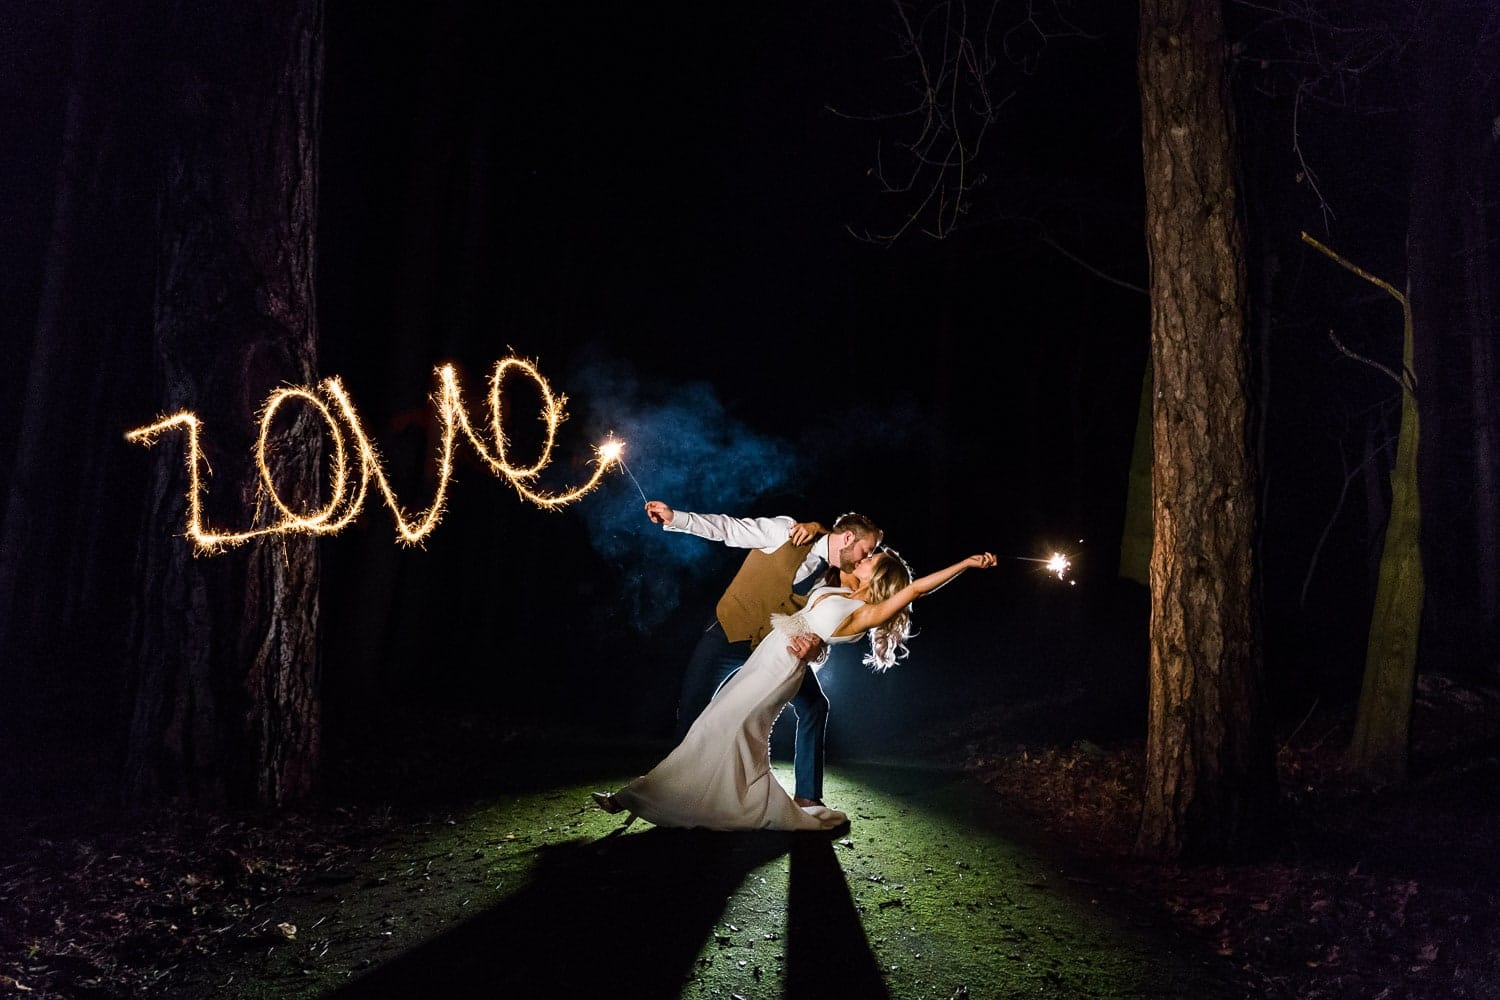 Winter wedding with sparklers